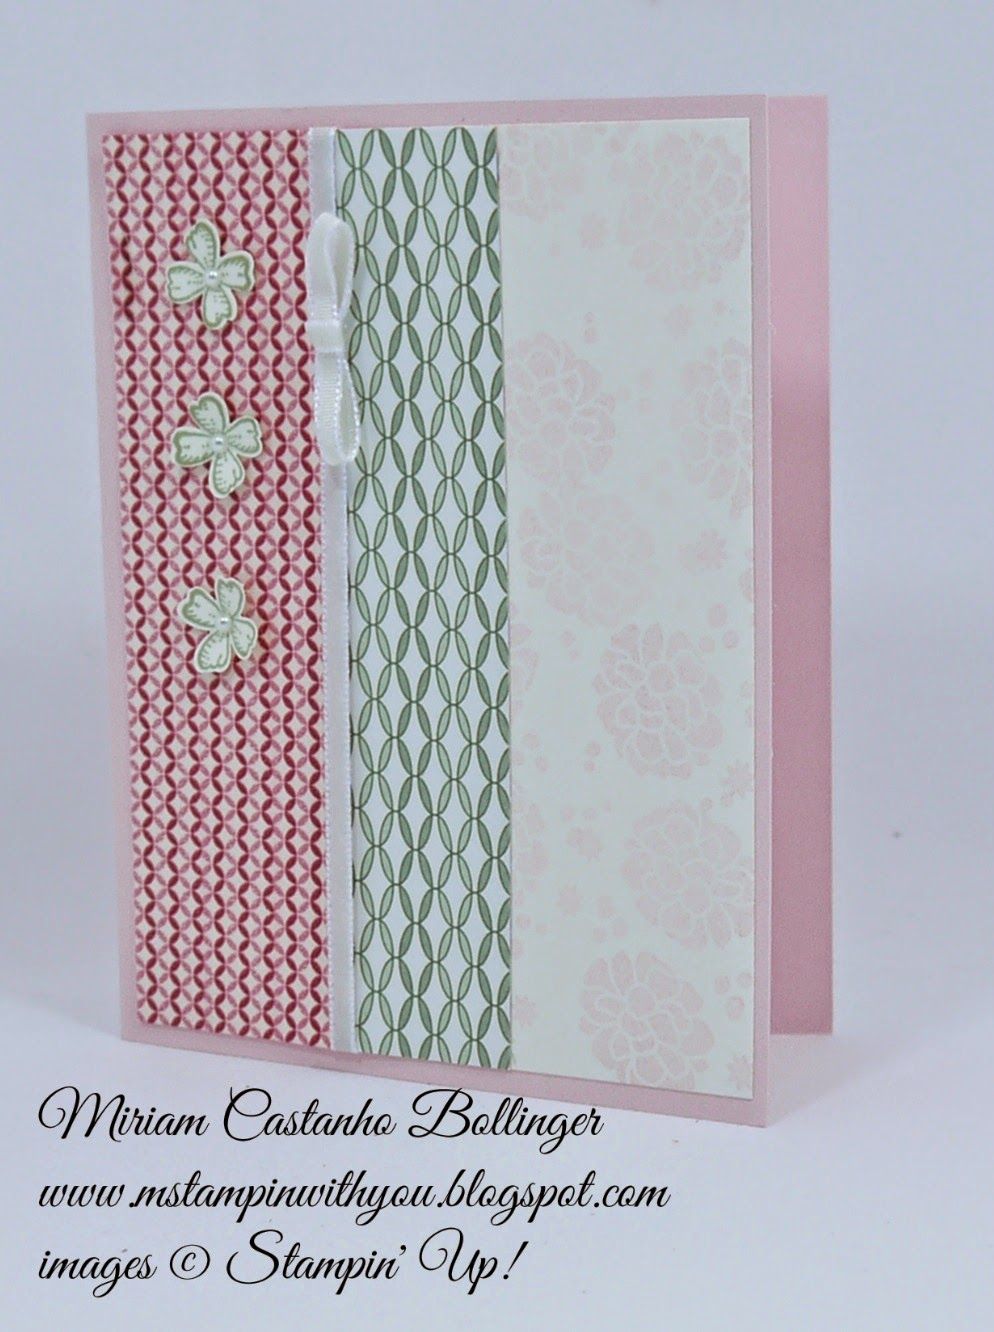 Miriam Castanho Bollinger, #mstampinwithyou, stampin up, demonstrator, rs, all occasions card, pocket full of posies dsp, perpetual birthday calendar, something to say stamp set, gingham garden DSP washi tape, itty bitty accents punch, su